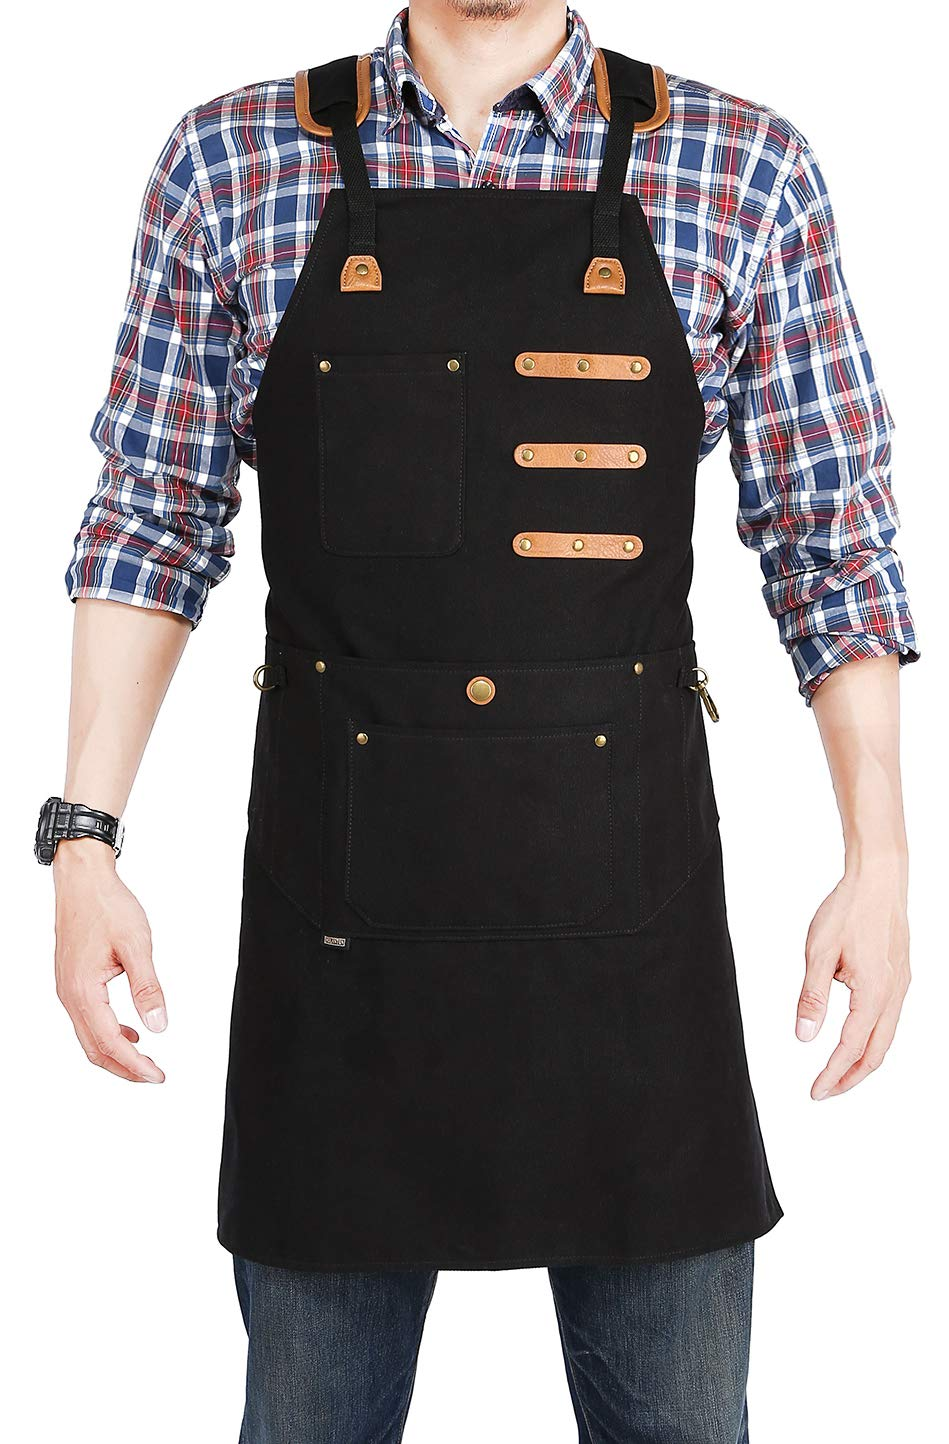 HOLANTON Shop Apron with 9 Tool Pockets Woodworking for Unisex Multifunctional Denim Smock Adjustable M to XXXL (BLACK) by HOLANTON